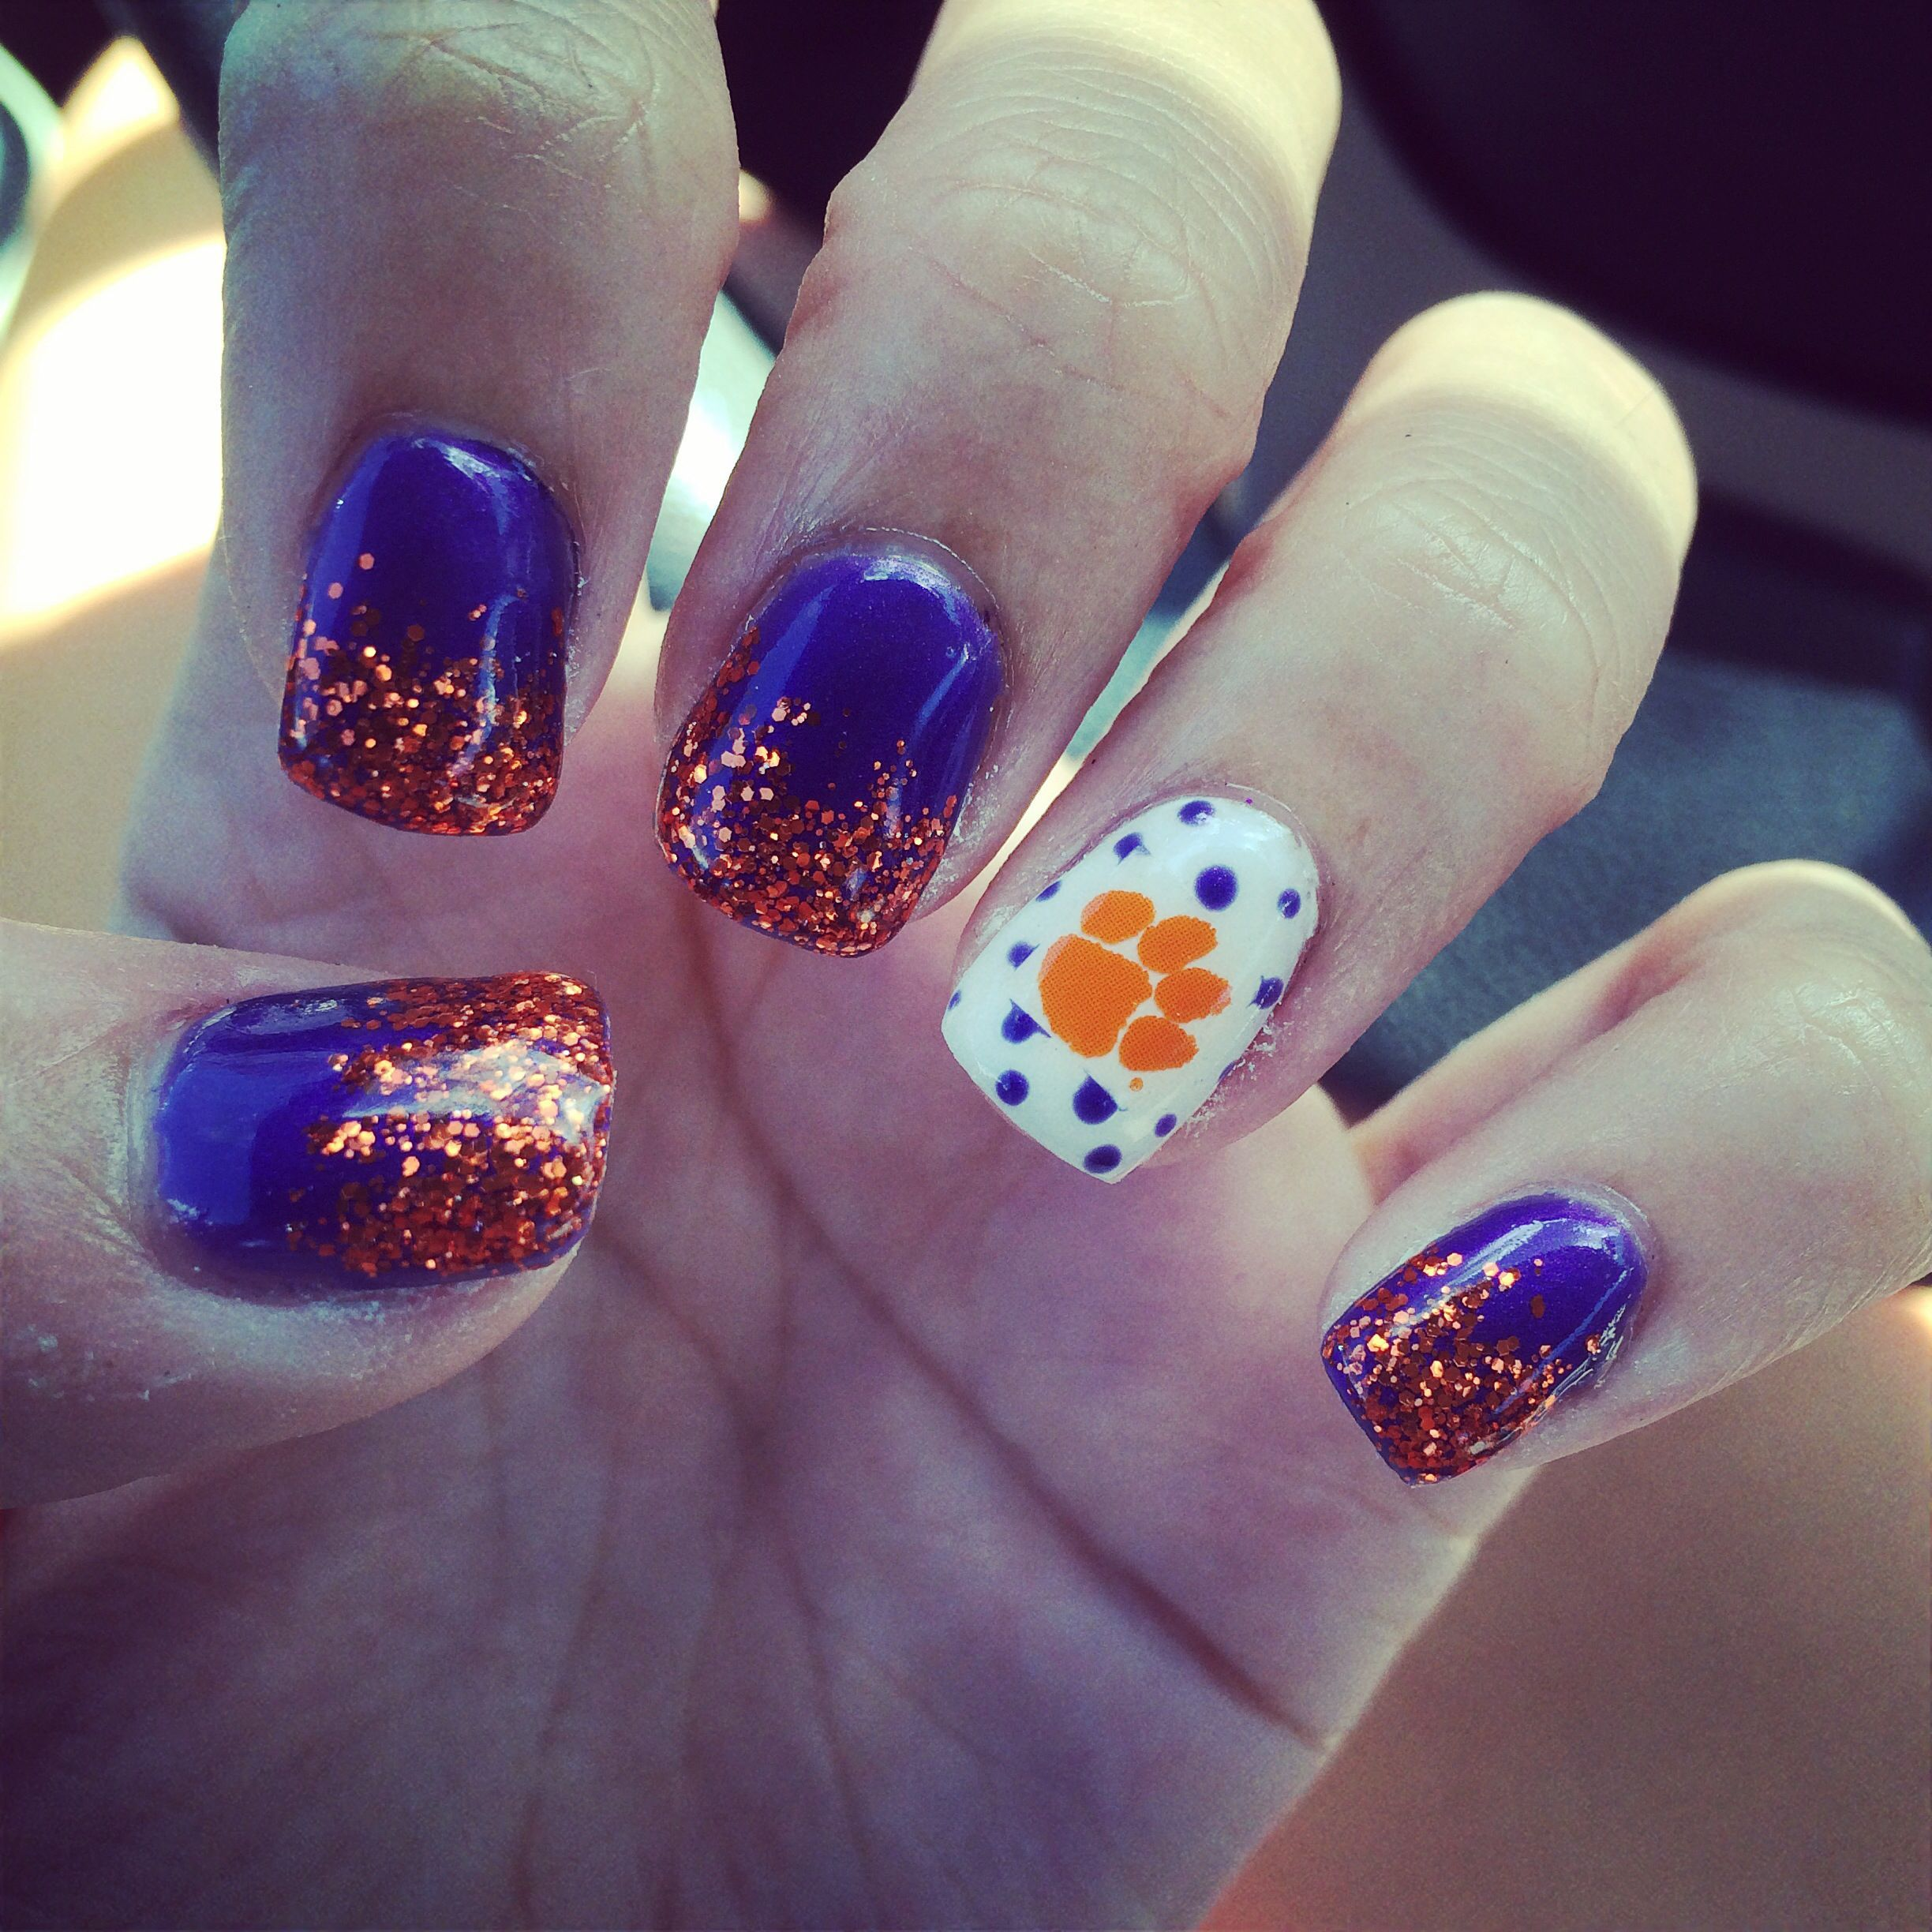 Pin on Nails Best Design 2020 2021